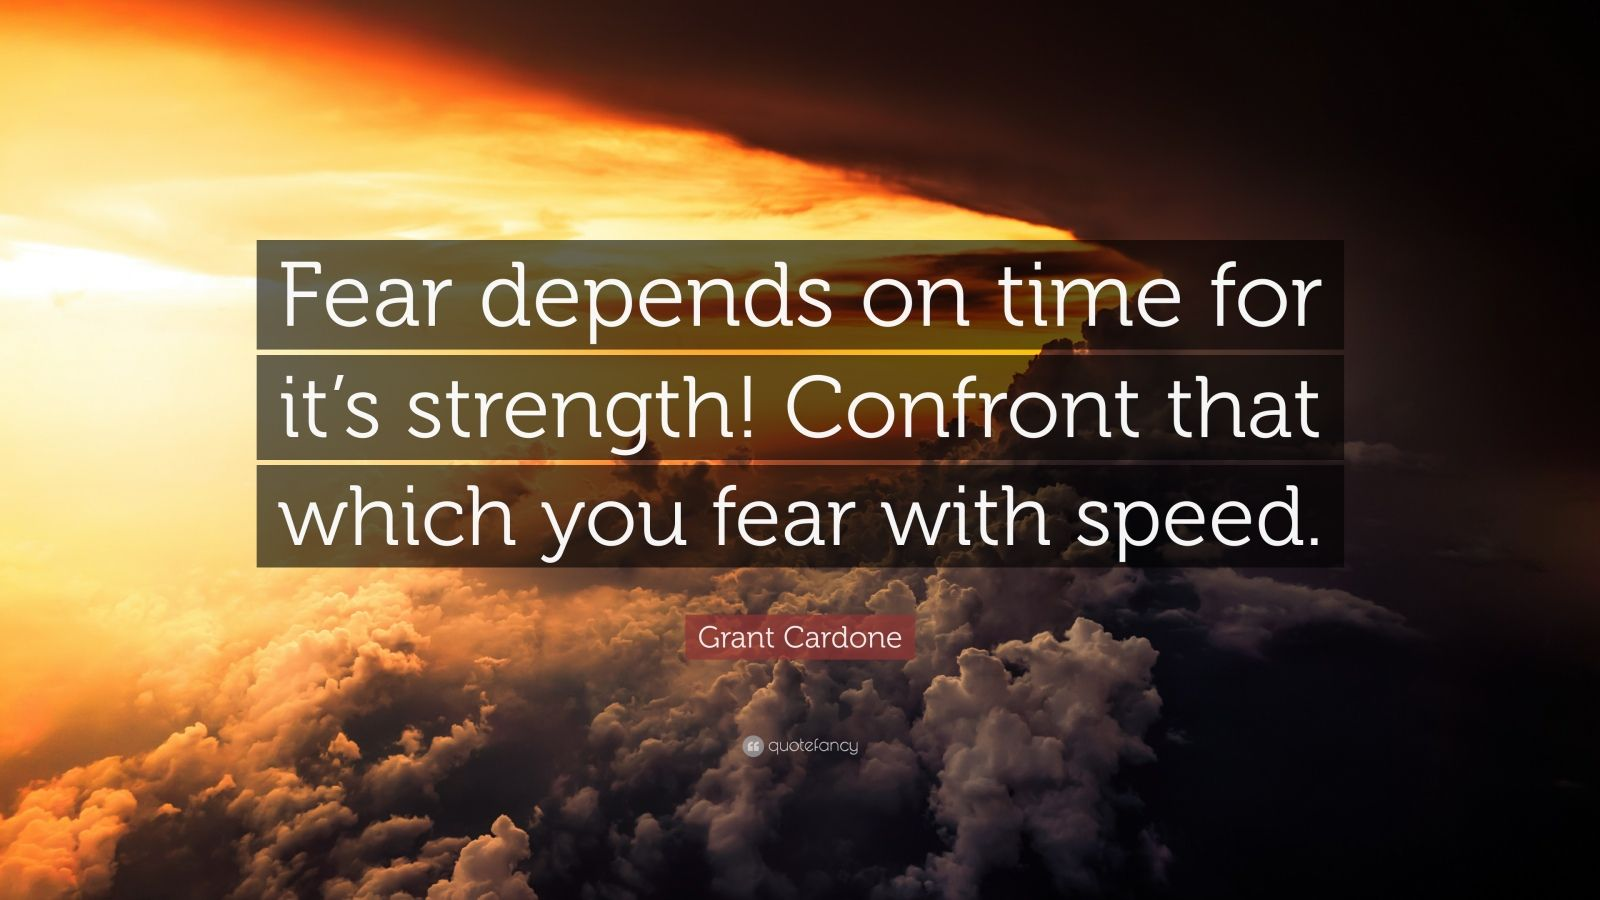 """Grant Cardone Quote: """"Fear depends on time for it's strength! Confront that which you fear with speed."""""""